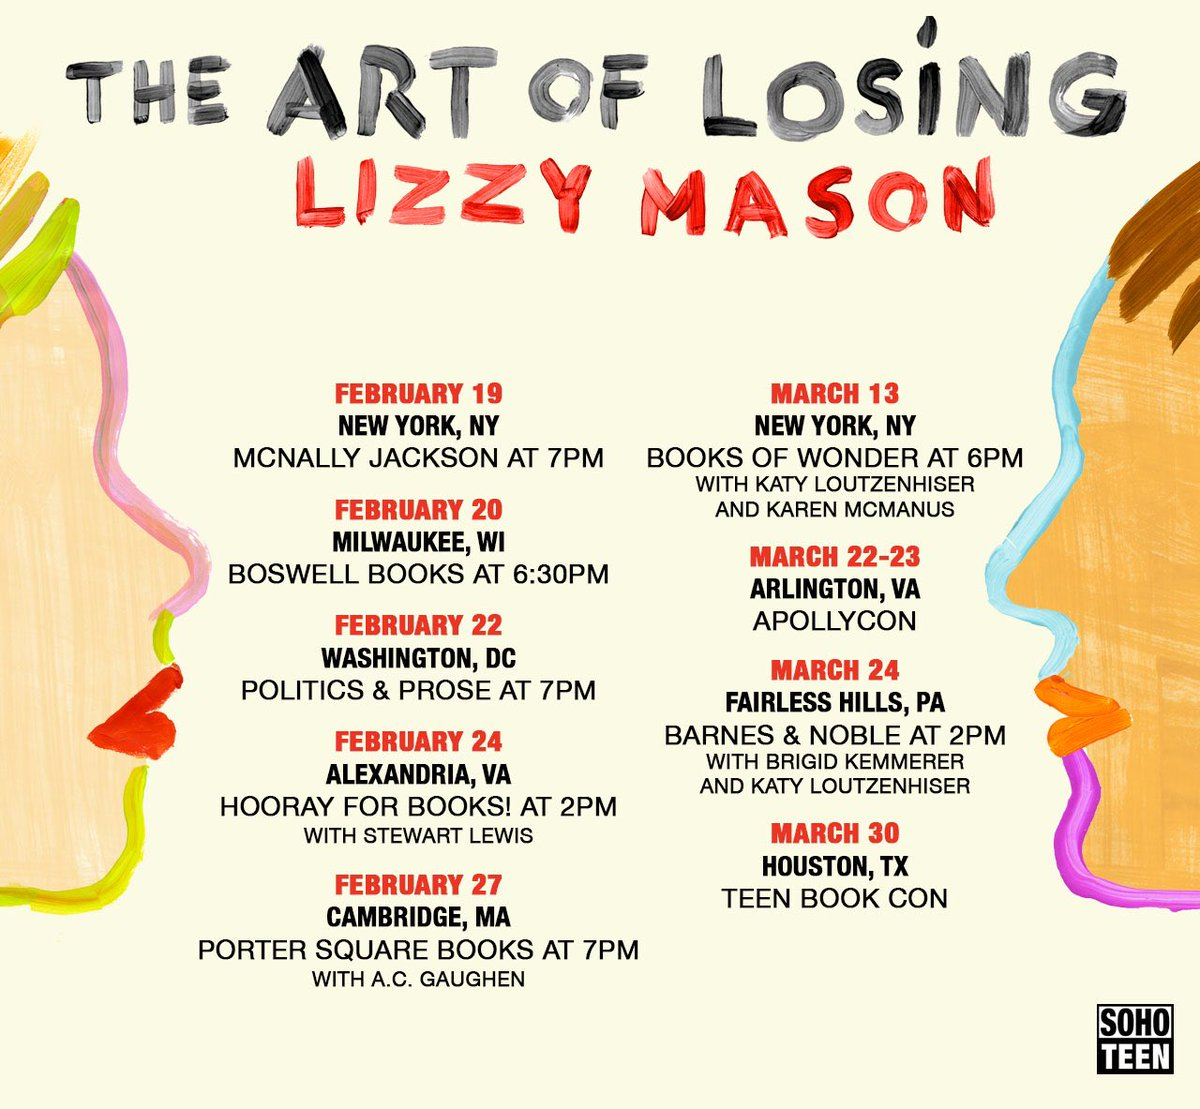 Lizzy Mason On Twitter Tour Announcement I Can T Wait To See So Many People I Love On Tour For Theartoflosing Will I See You At One Of These Tour Stops